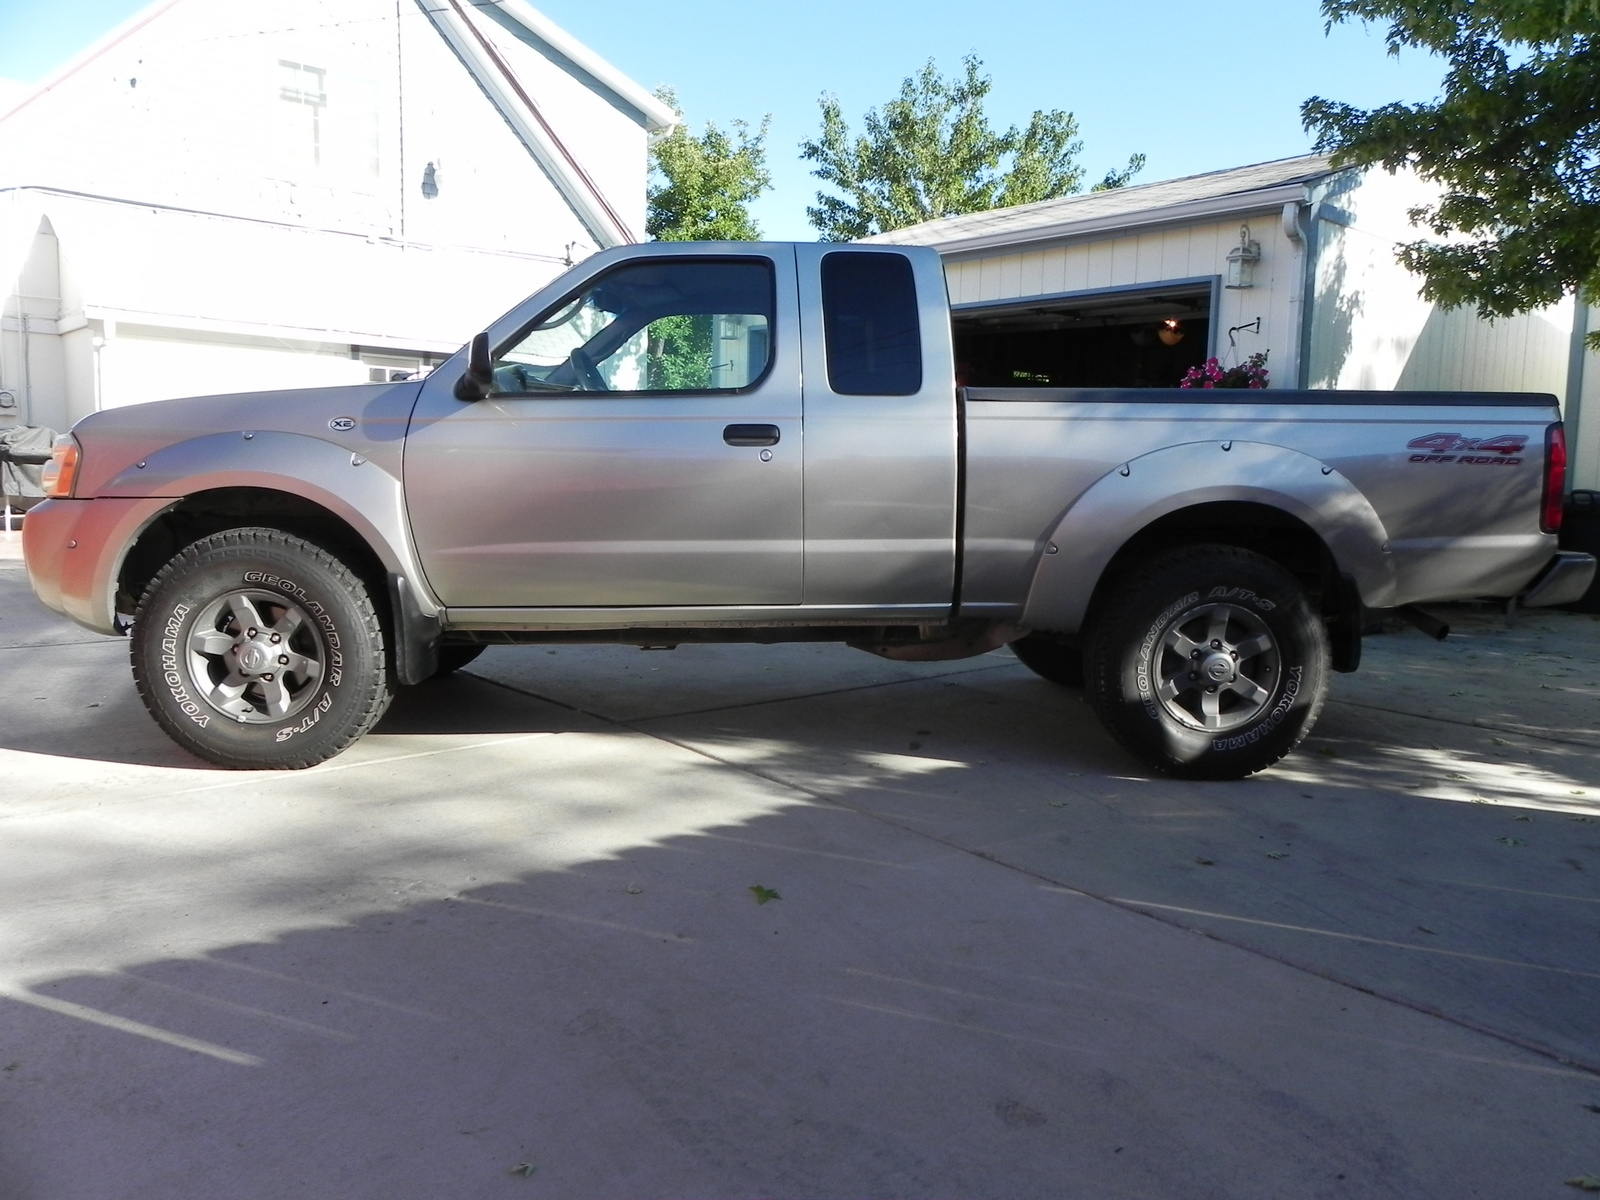 Nissan Frontier 4x4 Crew Cab For Sale +Frontier+Xe Picture of 2004 Nissan Frontier 2 Dr XE 4WD Extended Cab ...